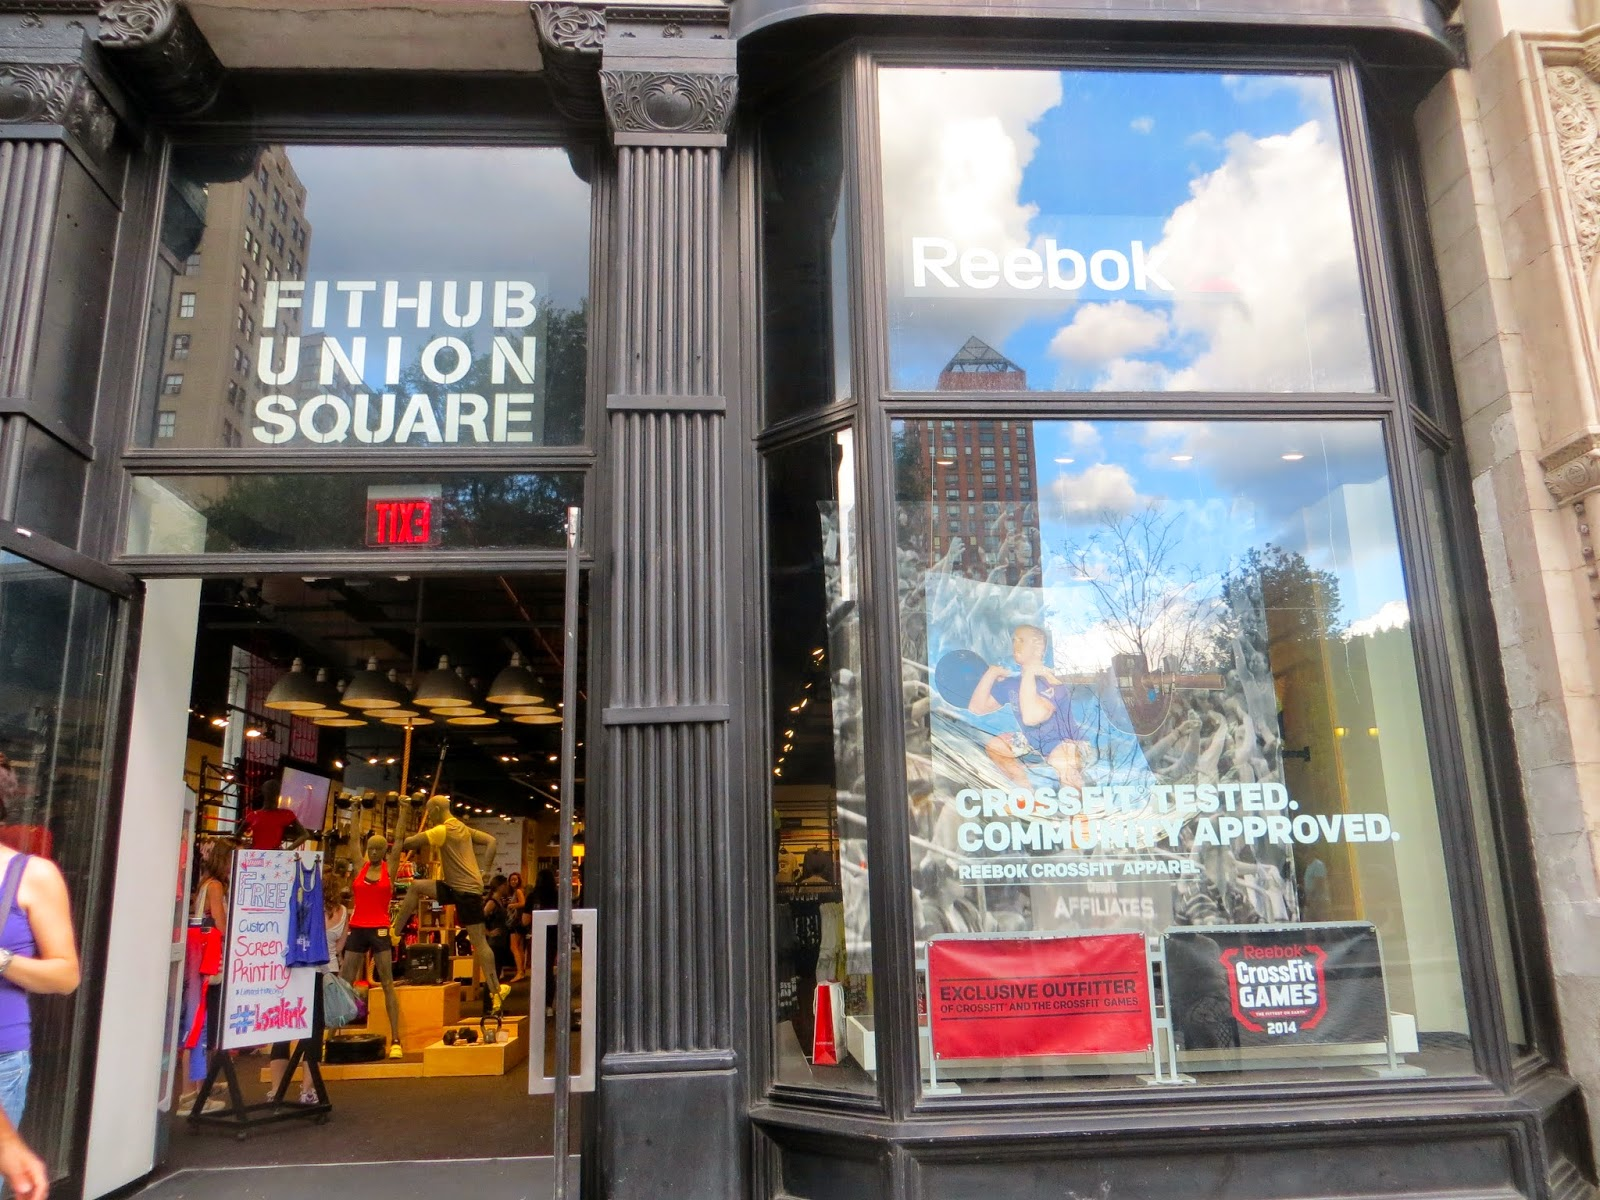 Reebok Fit Hub Store Crossfit Gym Opens In New York City Interior Design Shops Nyc Dare You To.